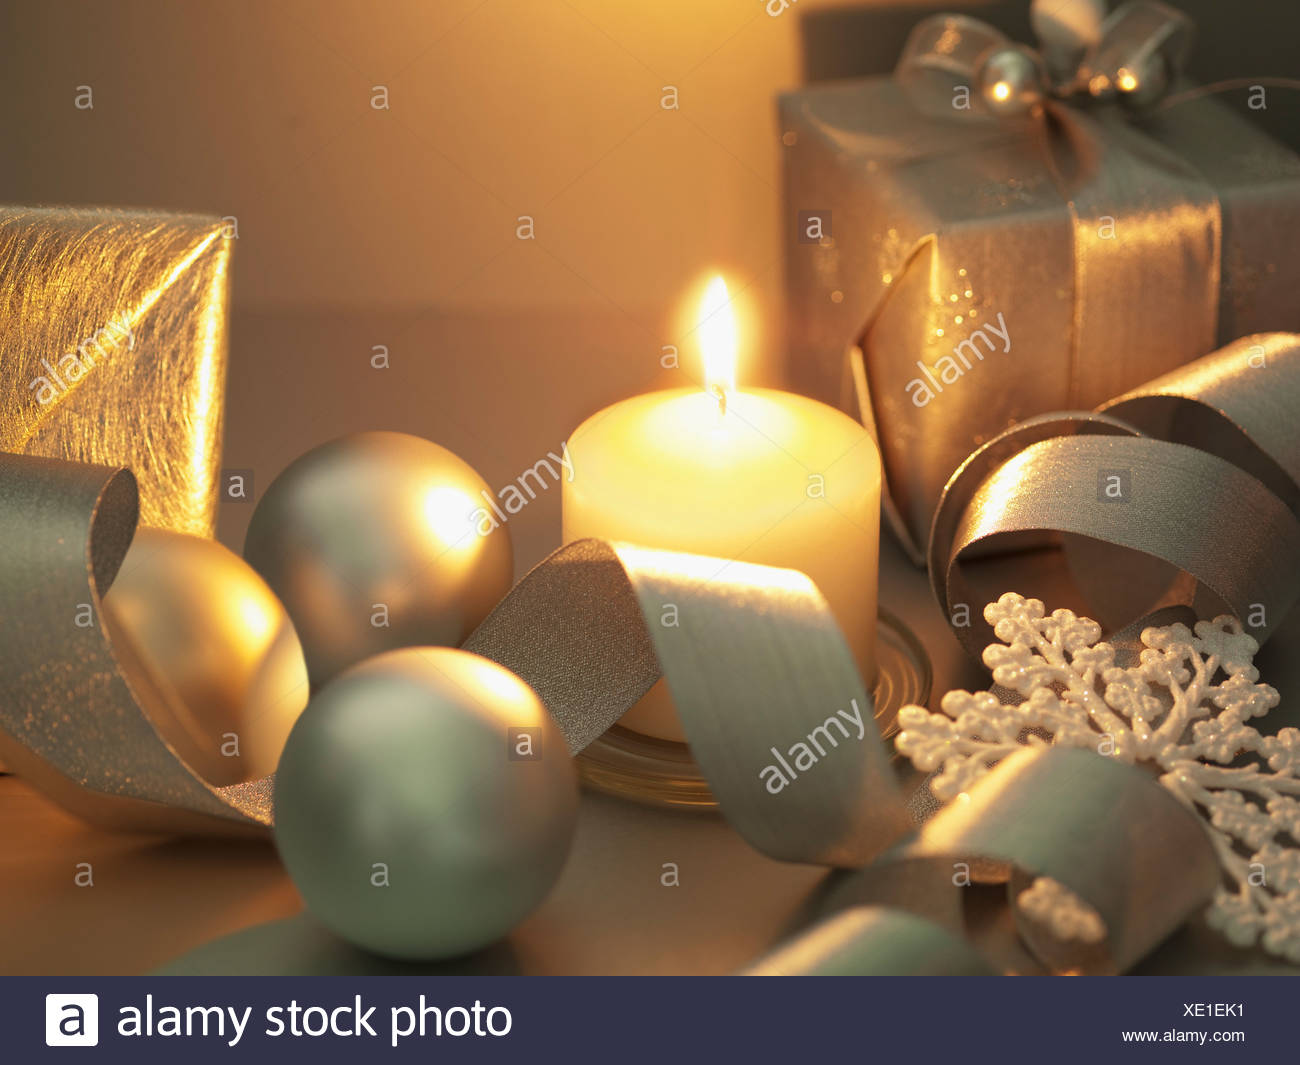 Christmas gifts, ornaments and candle Stock Photo: 284004533 - Alamy